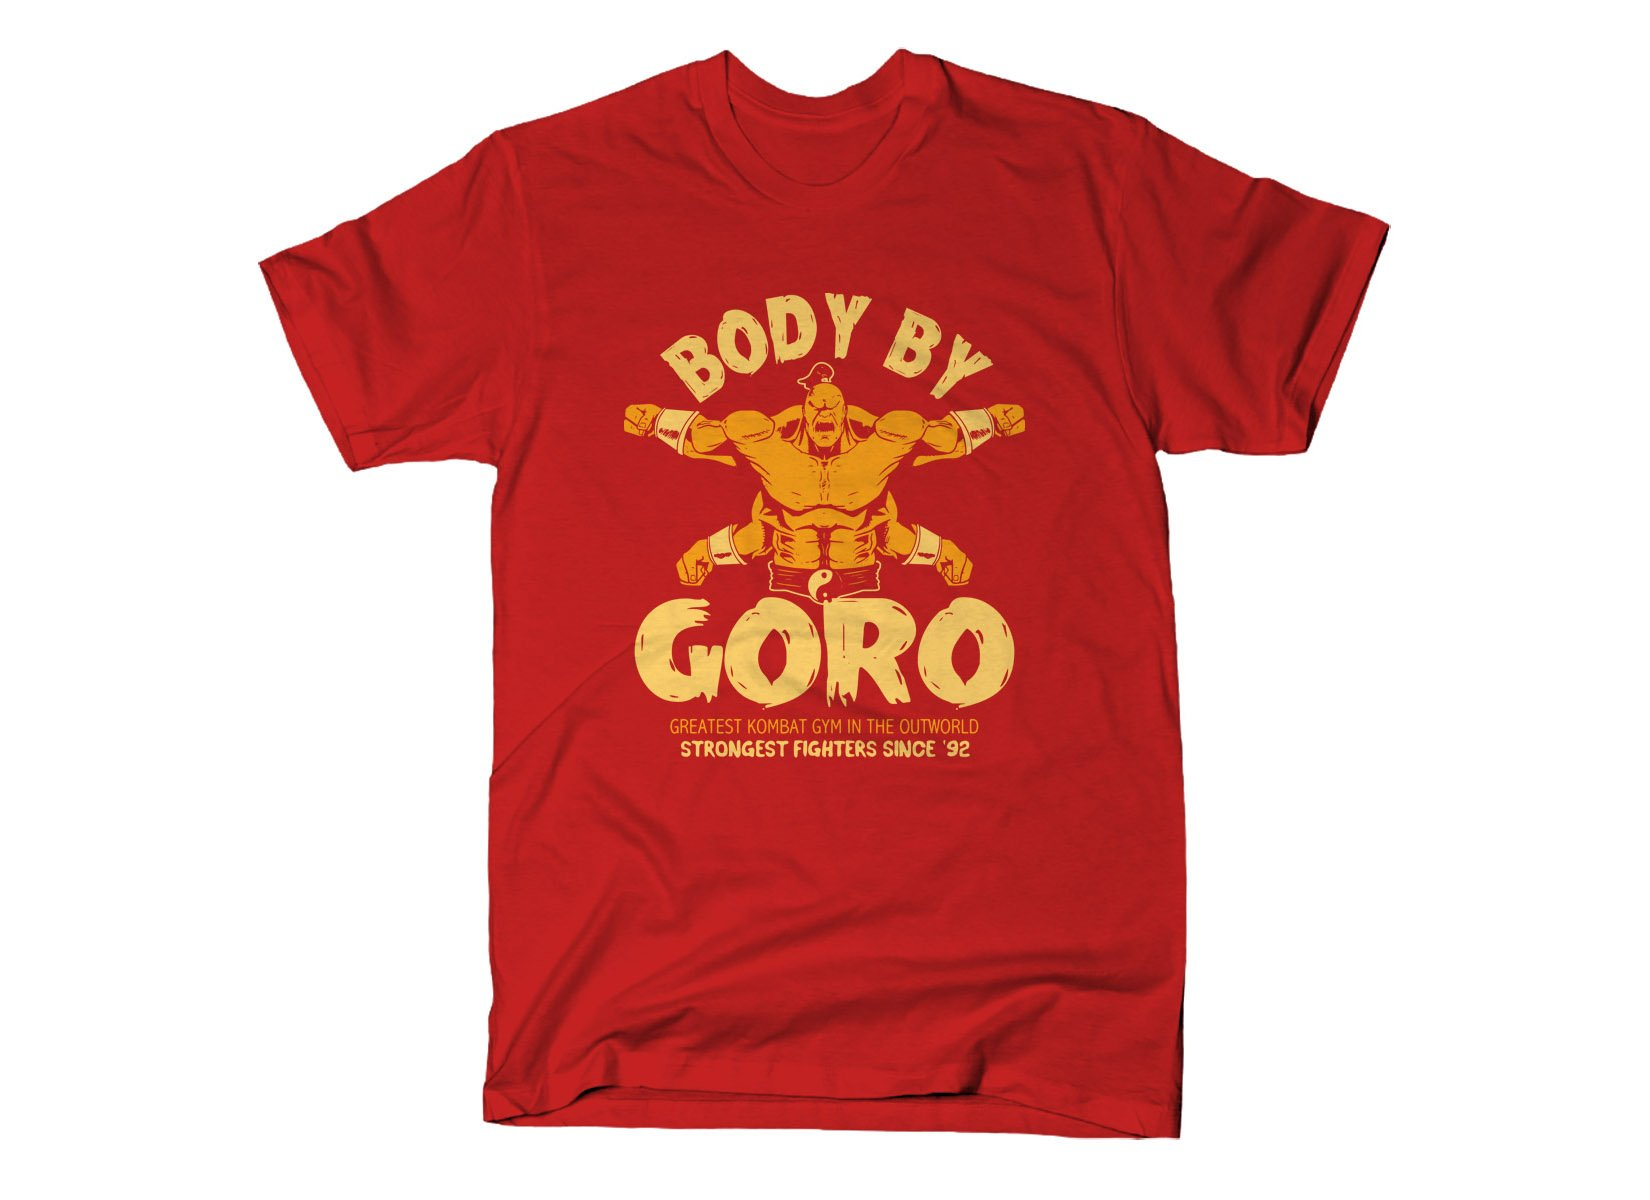 Body By Goro on Mens T-Shirt